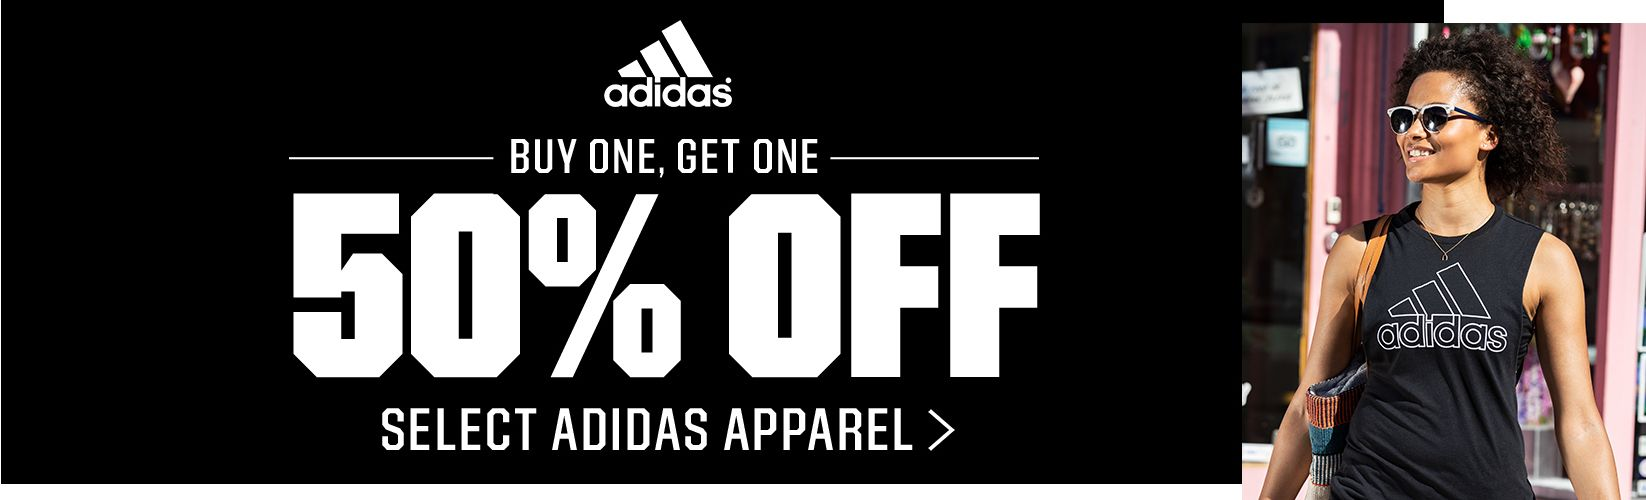 Buy one, get one 50% Off Select adidas Apparel